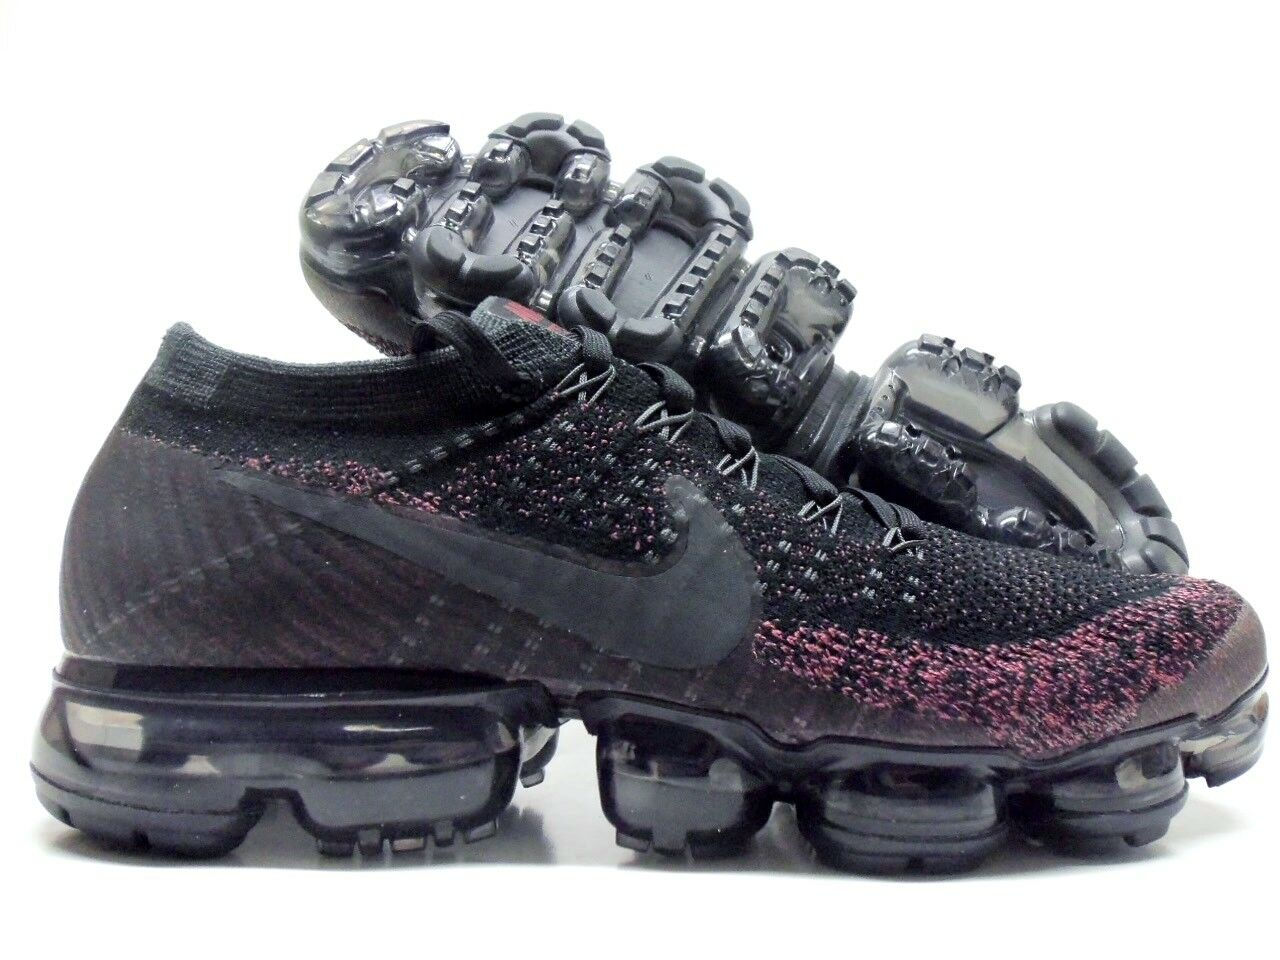 NIKE AIR VAPORMAX FLYKNIT BLACK ANTHRACITE SIZE WOMEN'S 10.5 MEN 9 [849557-007]